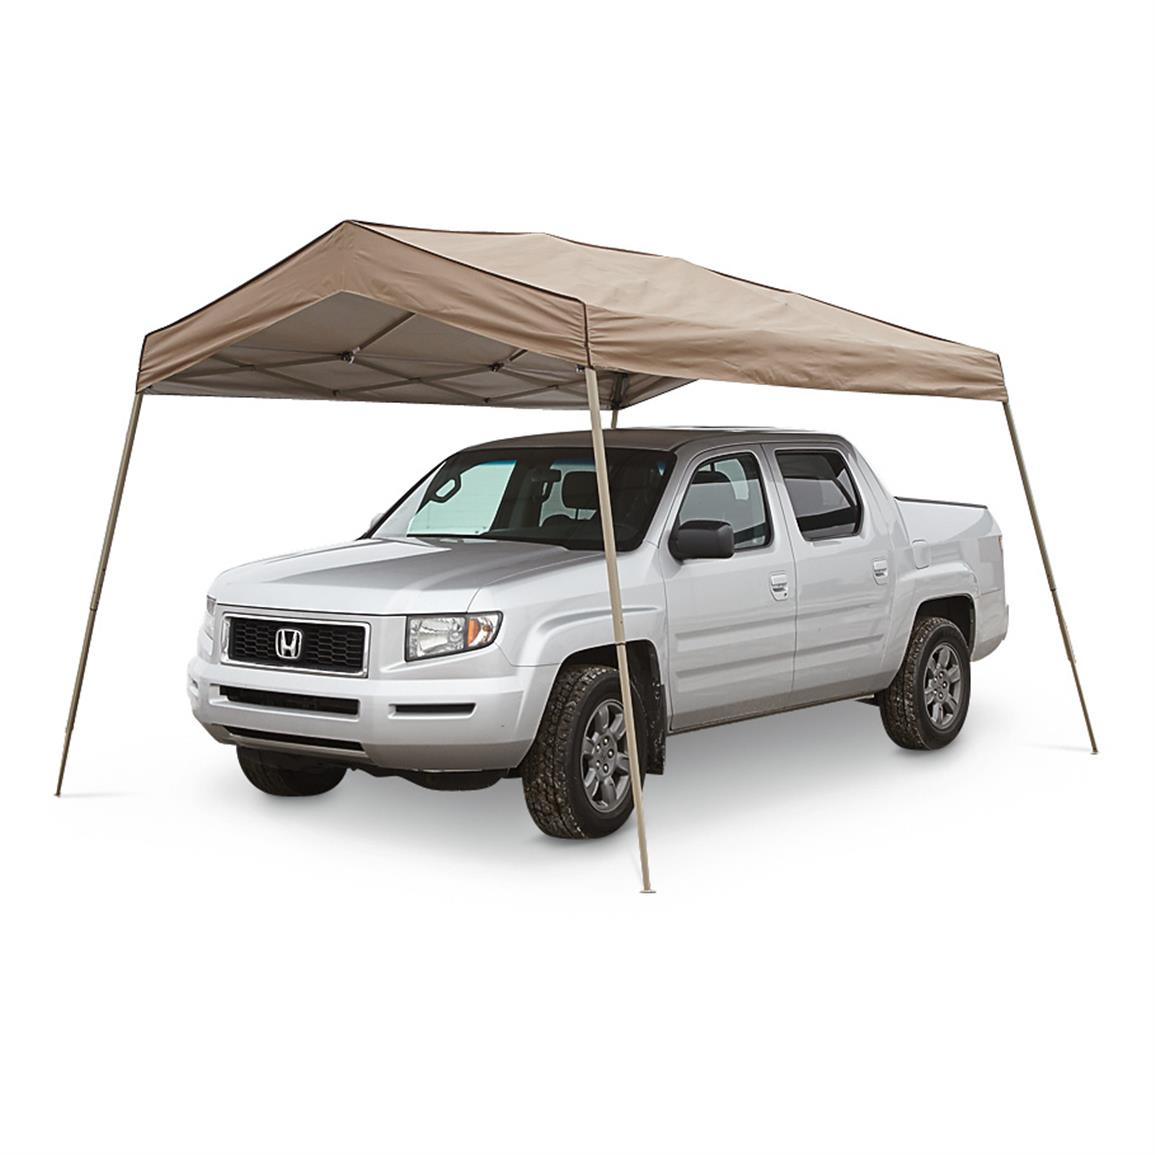 Cool shade for the whole gang or a vehicle